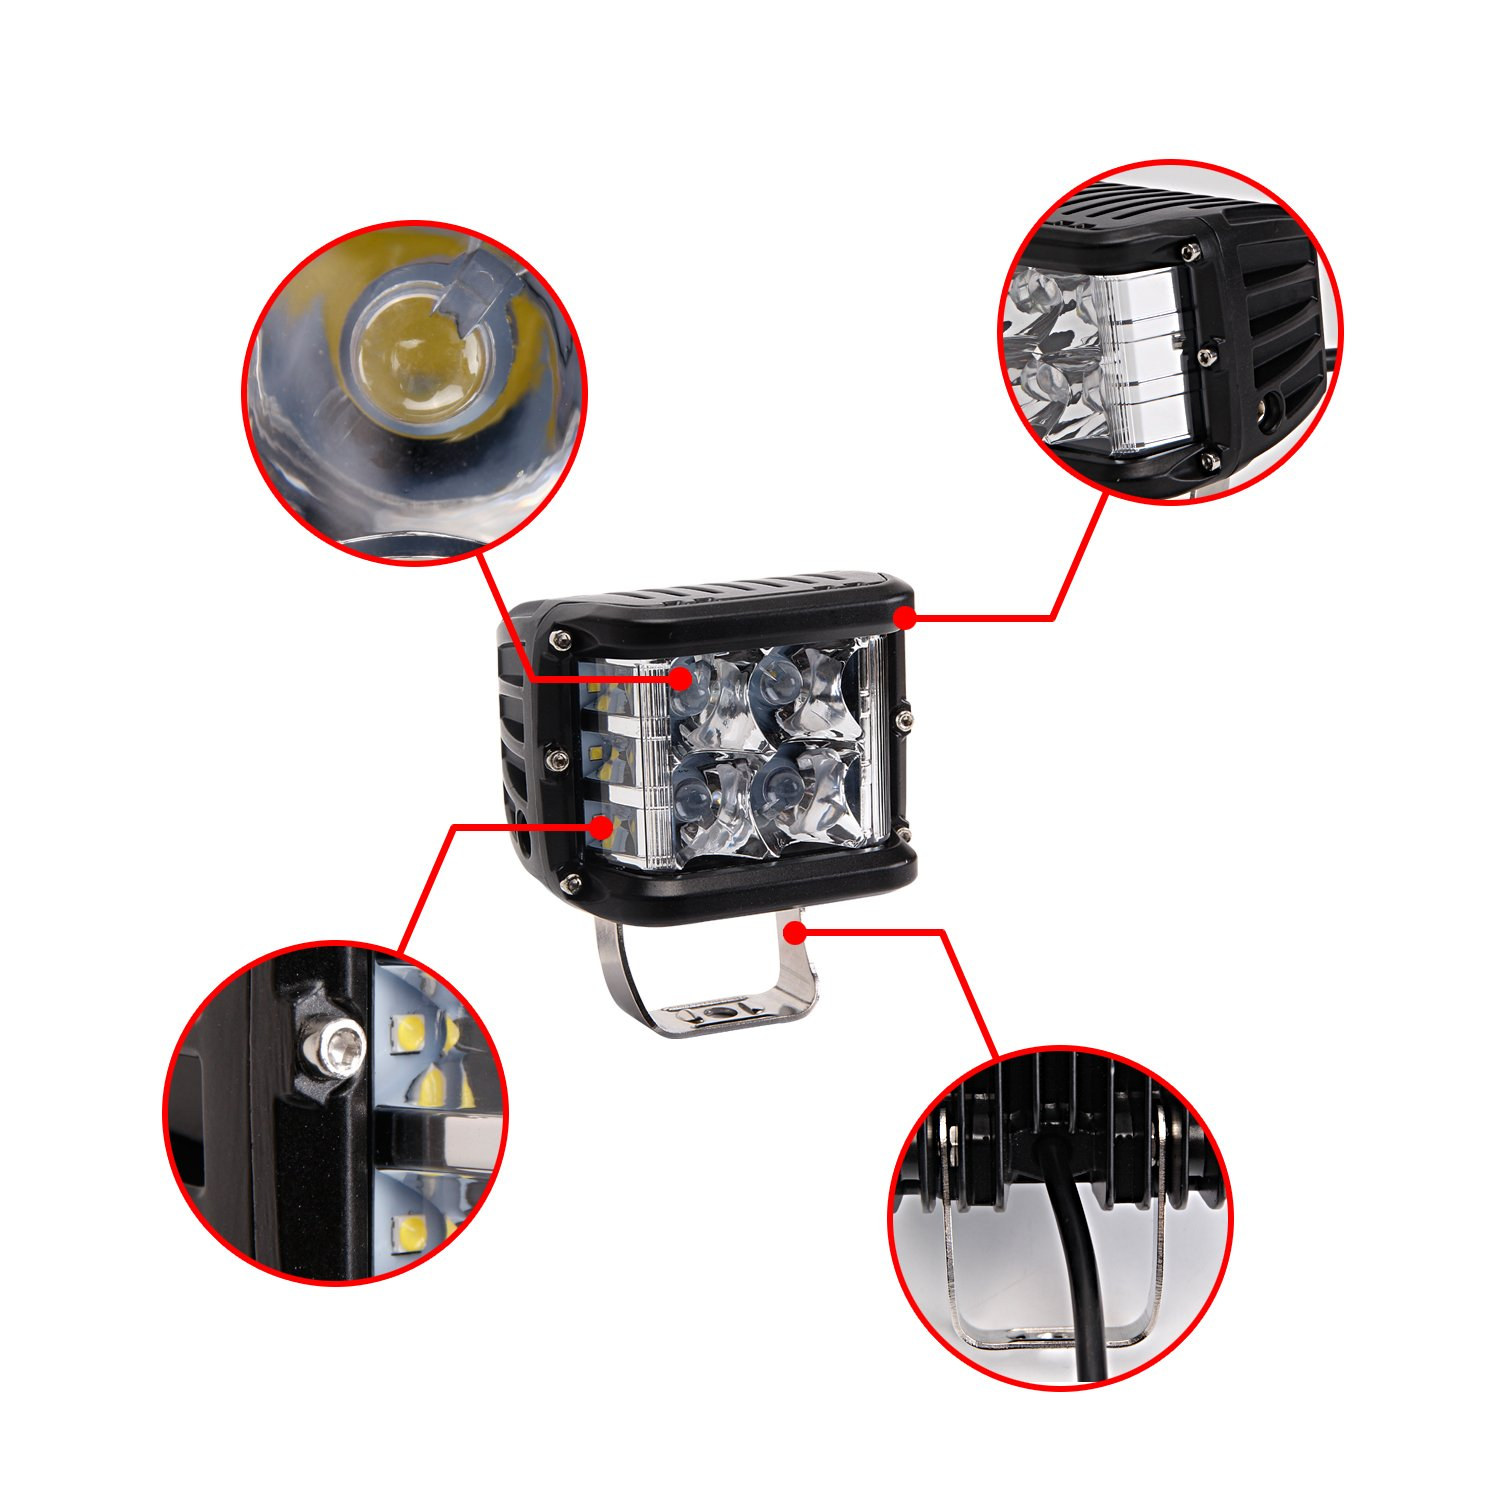 1 Year Warranty Bangbangche 2X 5inch 80W 4D Combo Square Led Bar Jeep Off Road Lights for Boat Truck Tractor Trailer ATV SUV 4X4